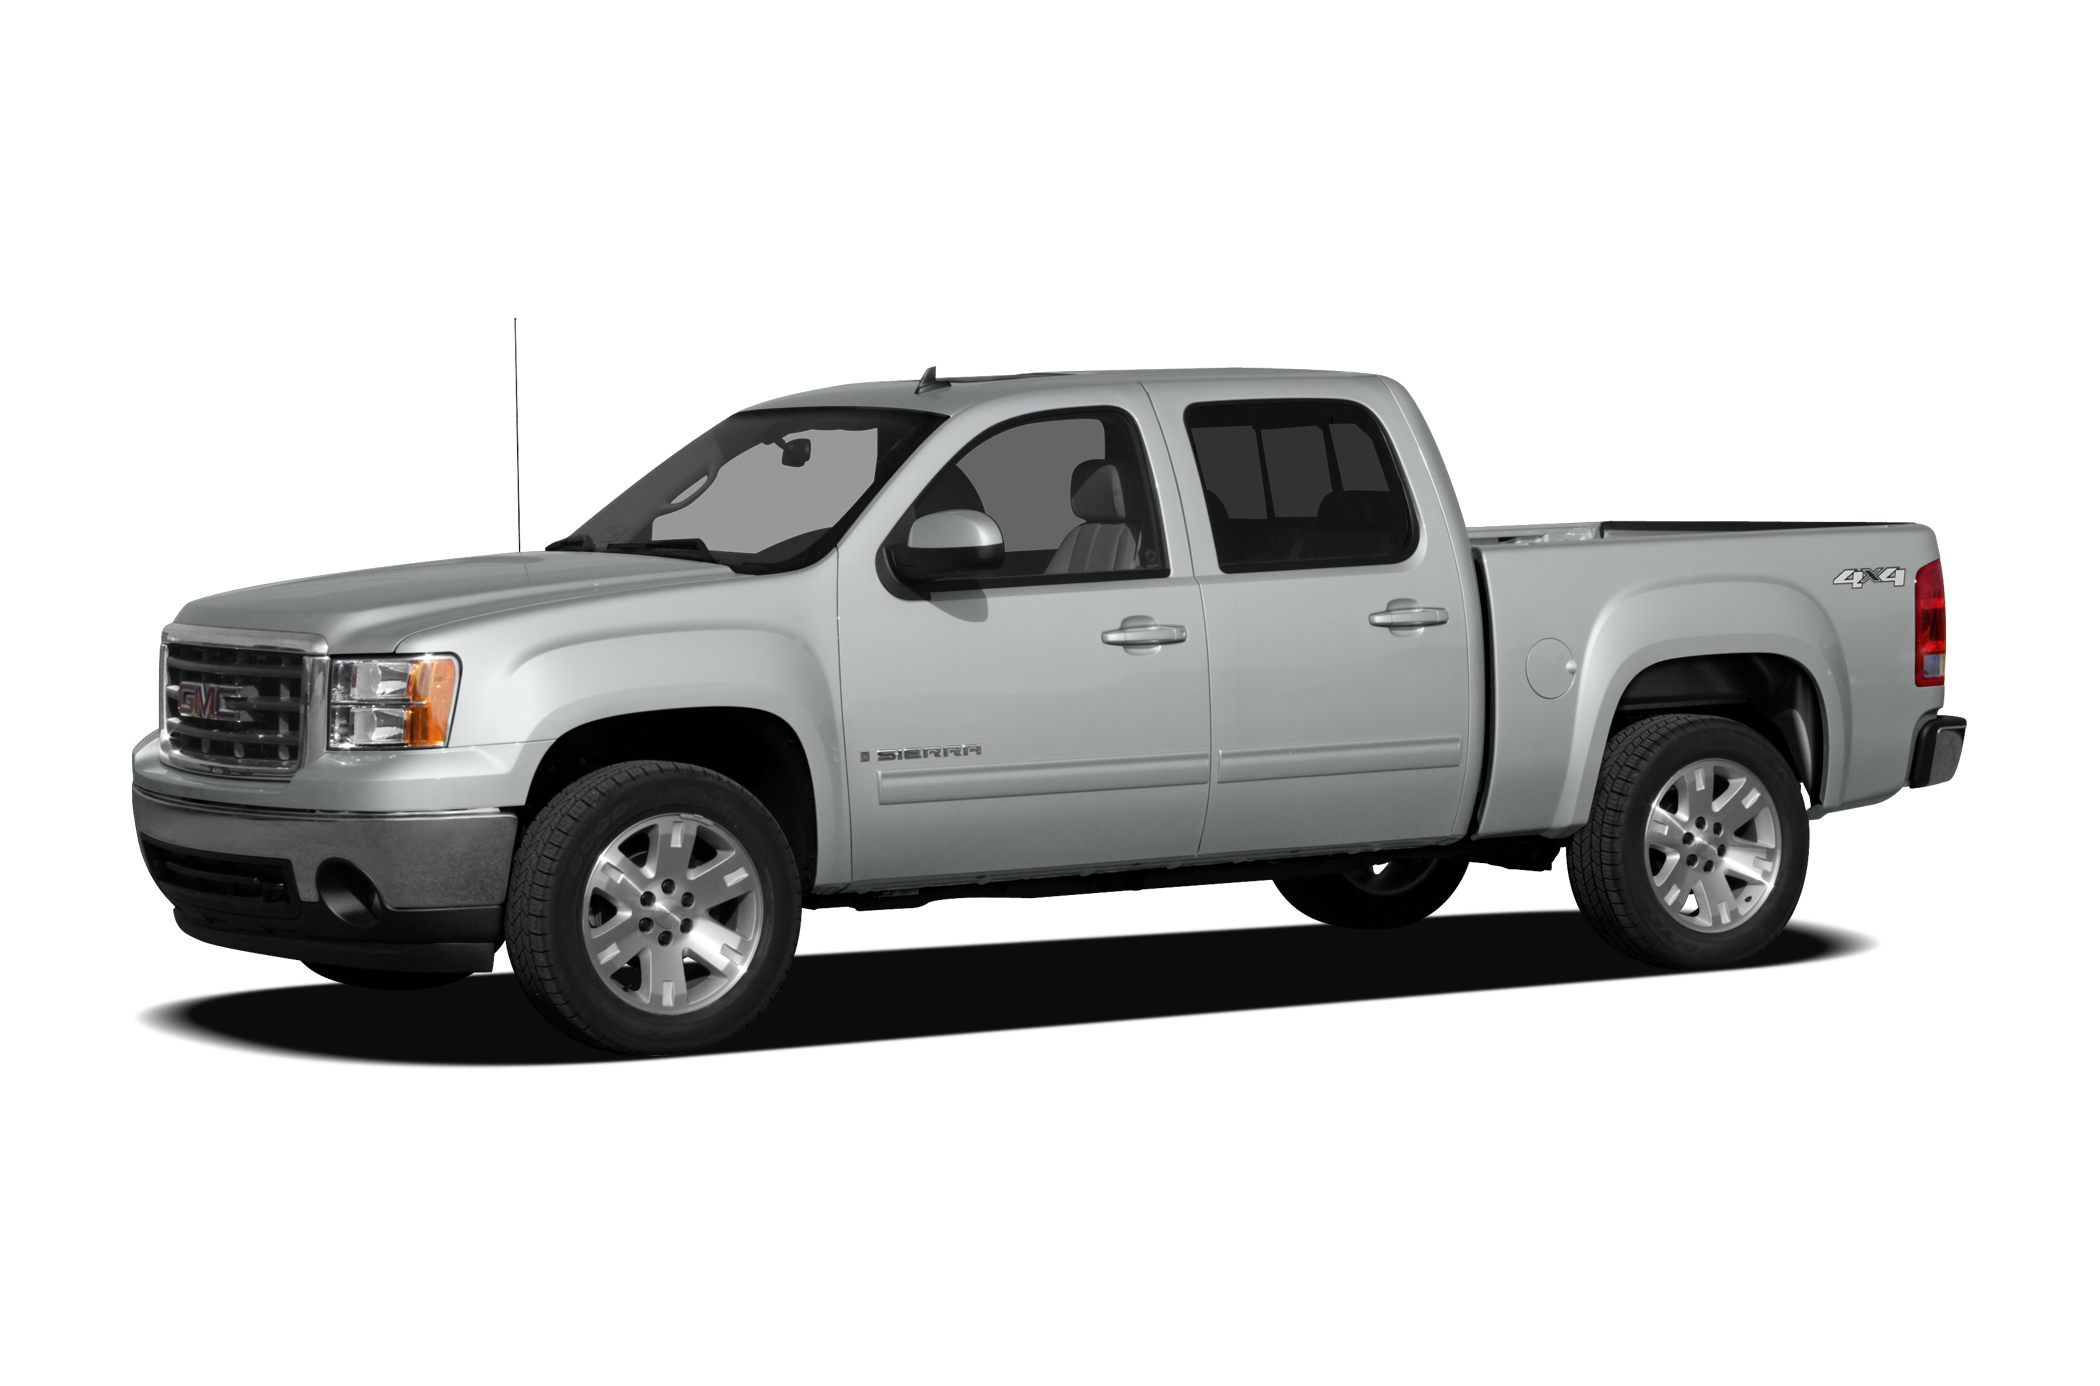 2012 GMC Sierra 1500 SLT 6-Speed Automatic 4WD and Leather Short Bed Leather An enduring cont